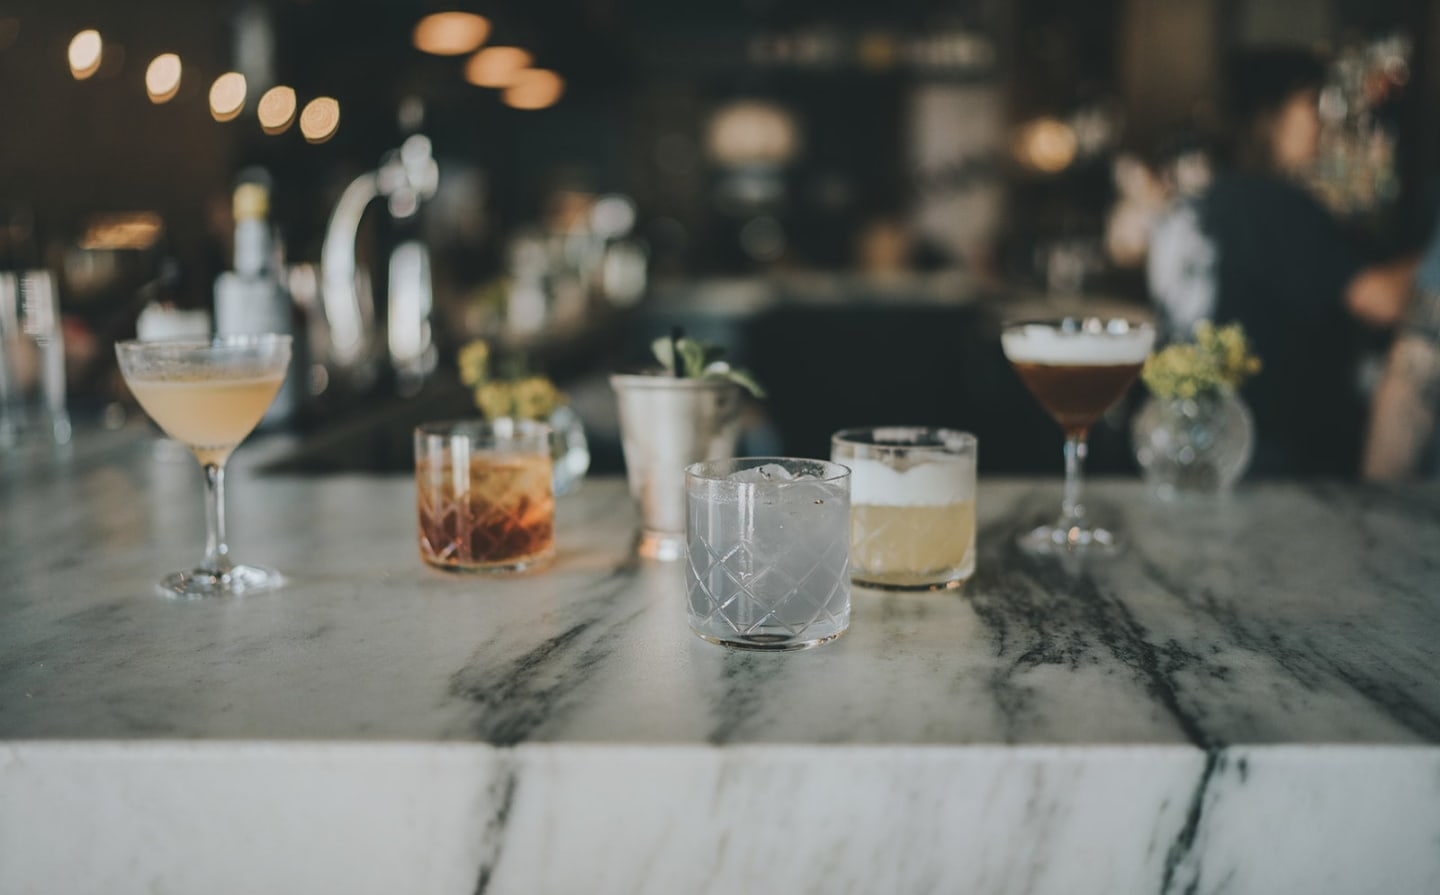 cocktails at the bar